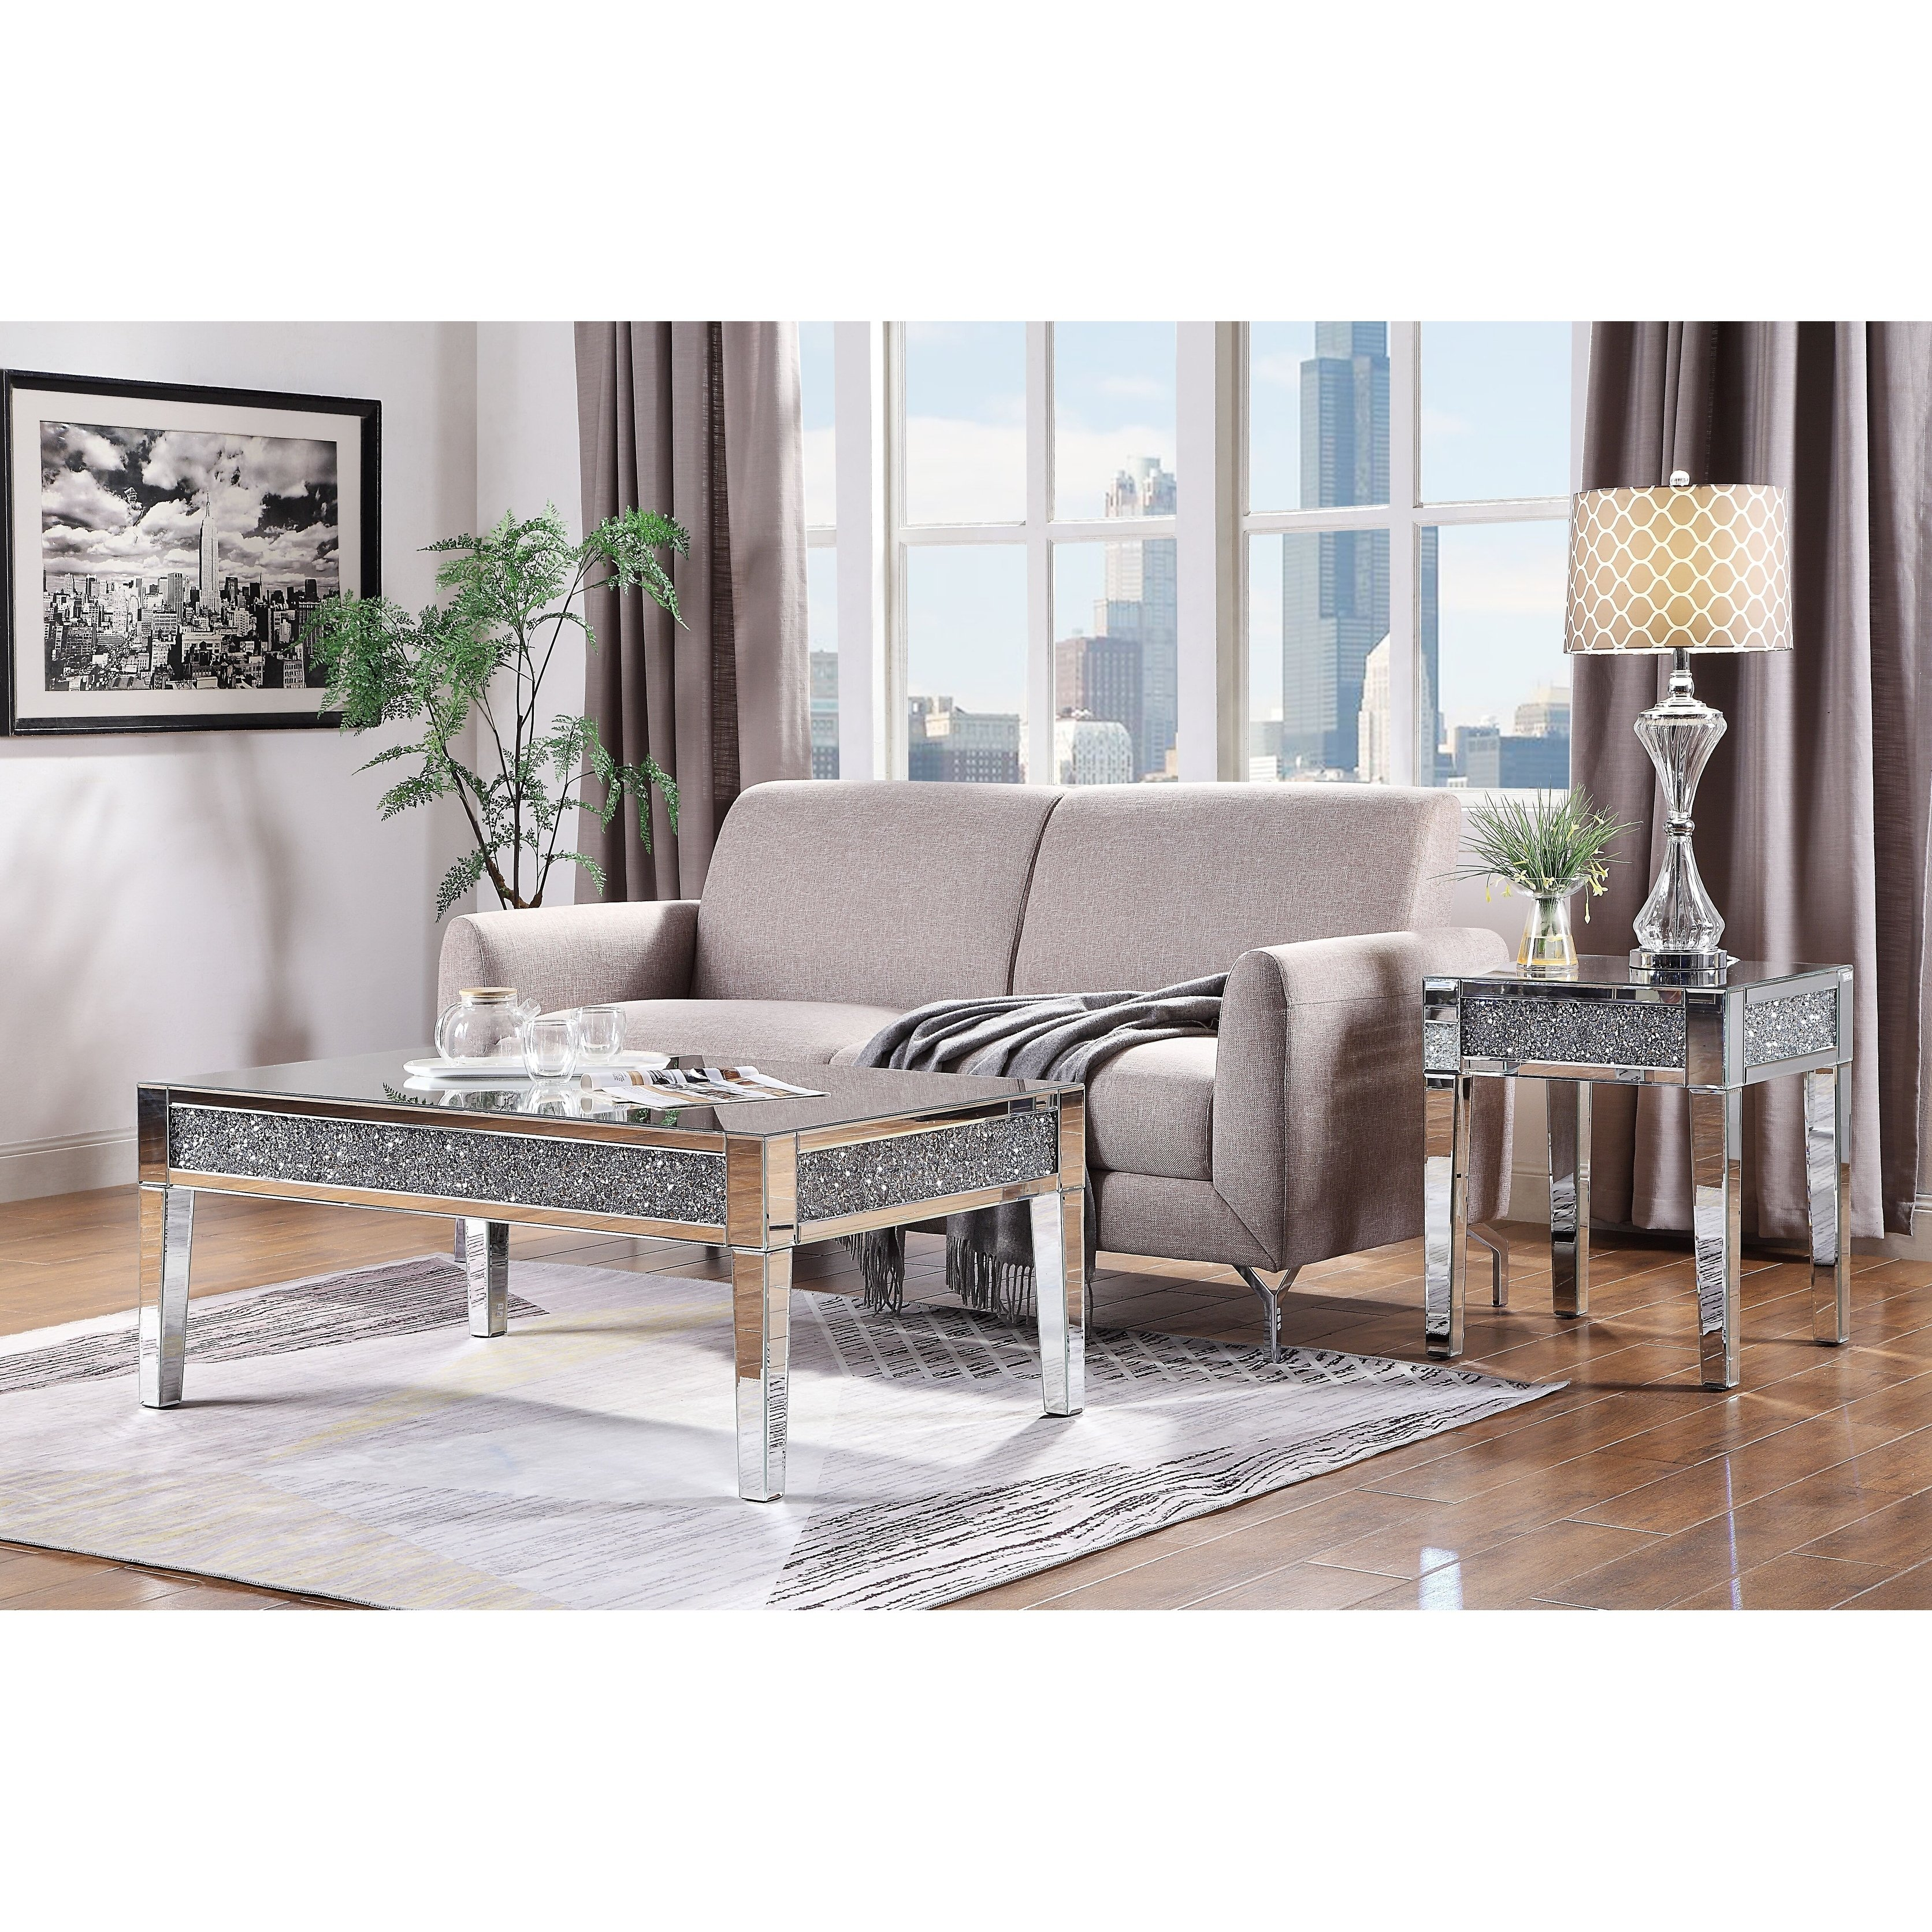 acme noralie coffee table mirrored and faux diamonds free diamond accent shipping today round wood metal home furniture design goods dressers cream asian inspired lamps ikea